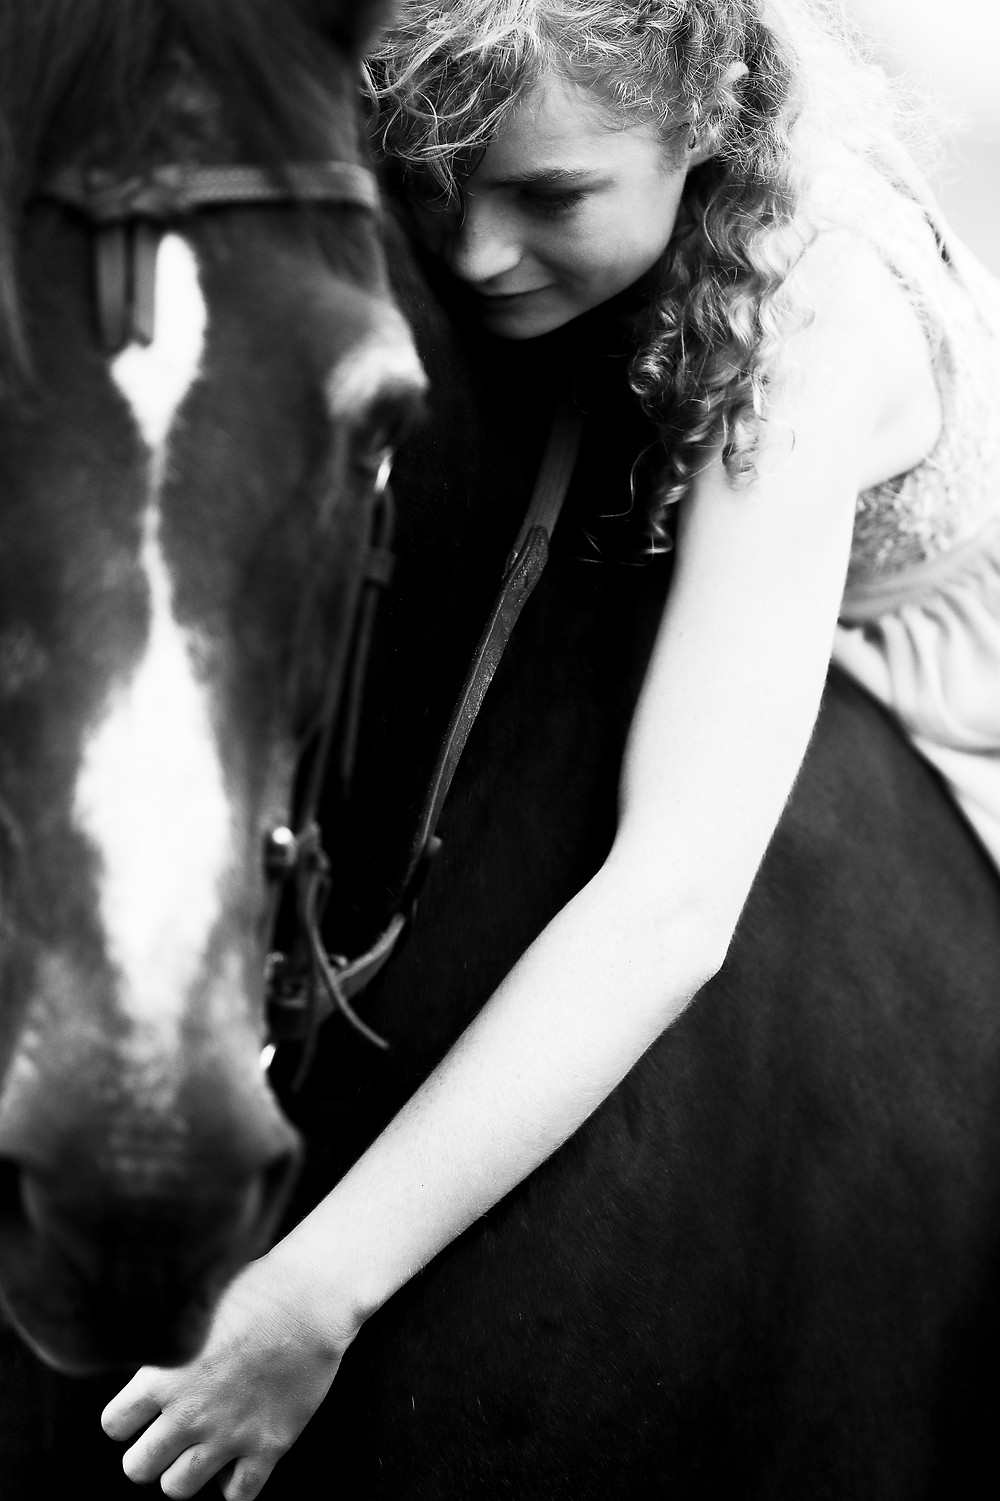 Horse and rider.